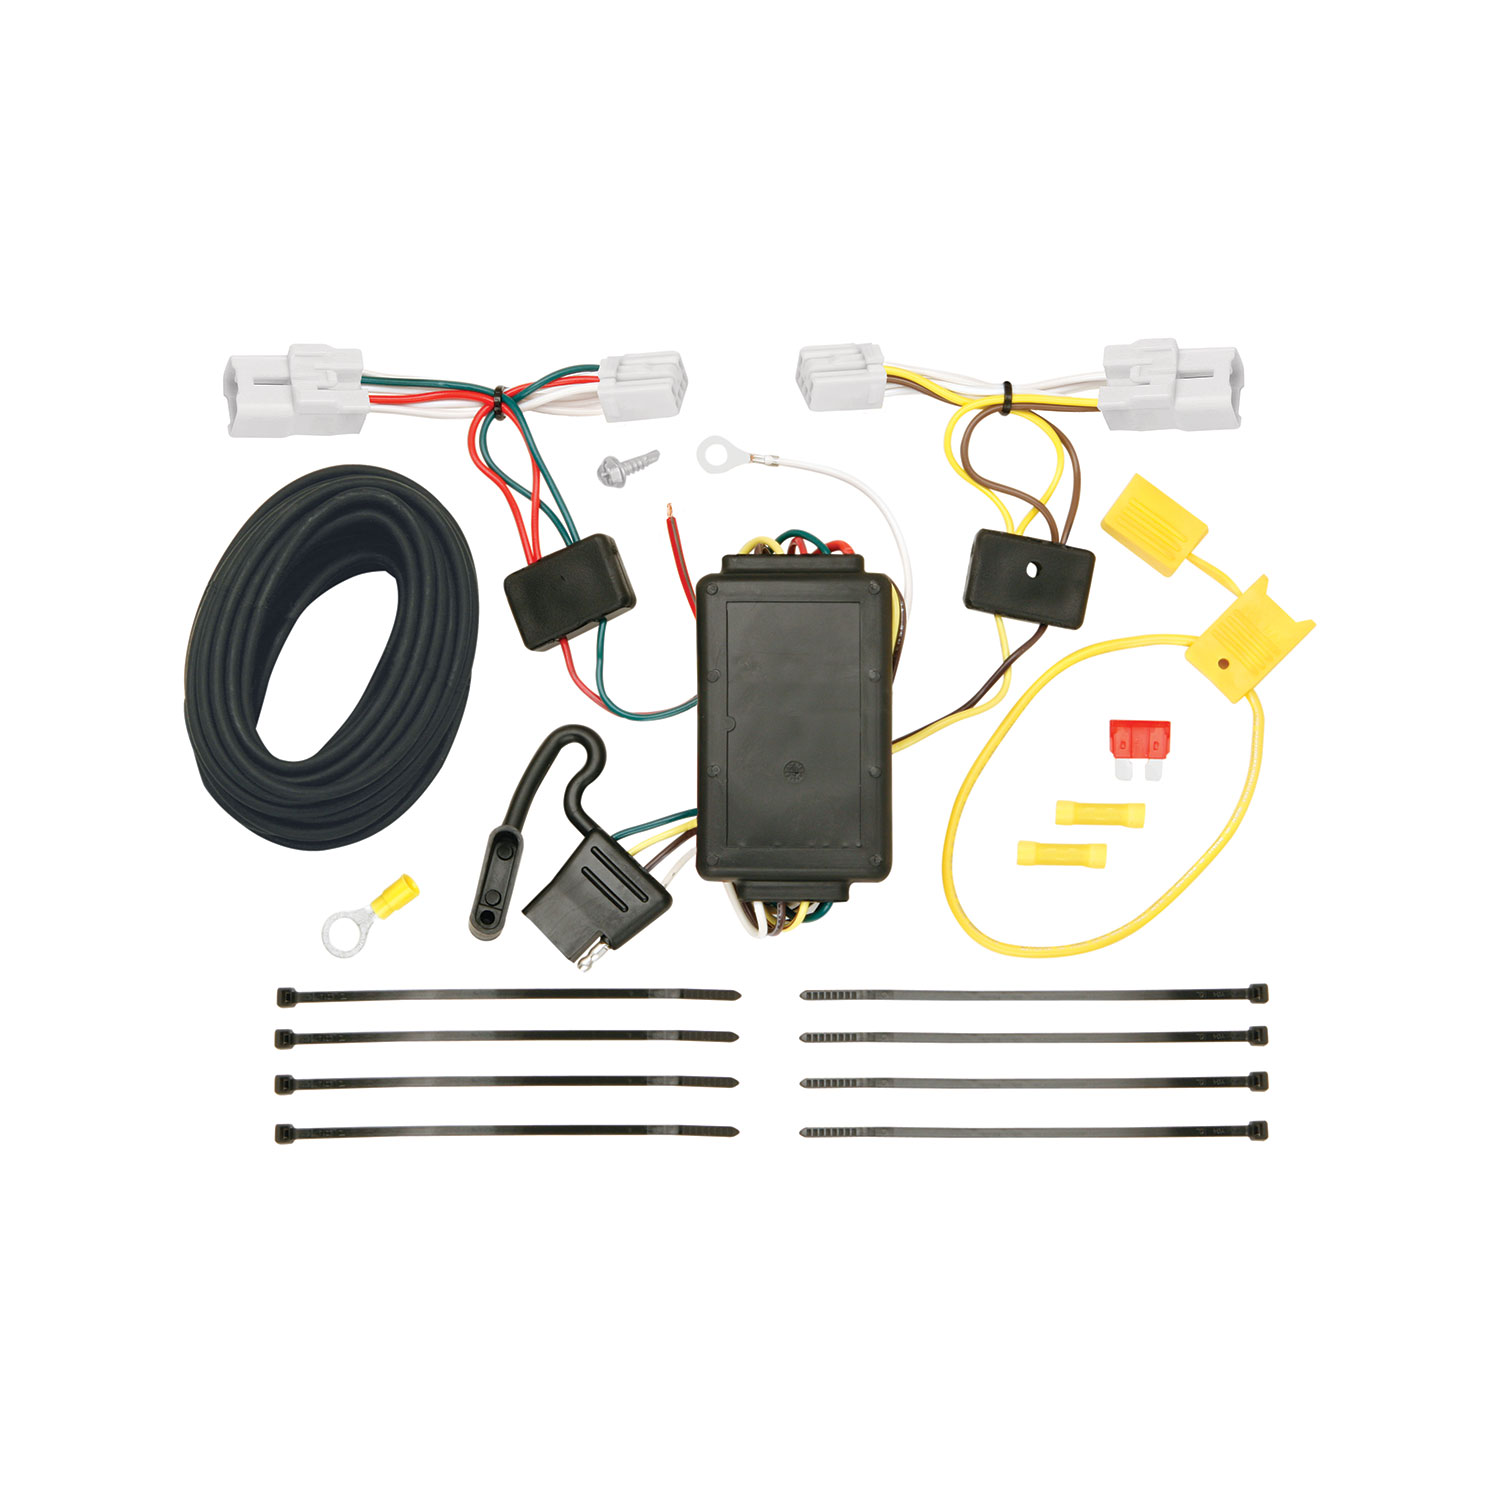 hight resolution of tekonsha 118517 trailer wiring connector t one 4 way flat replacement for oem wiring harness